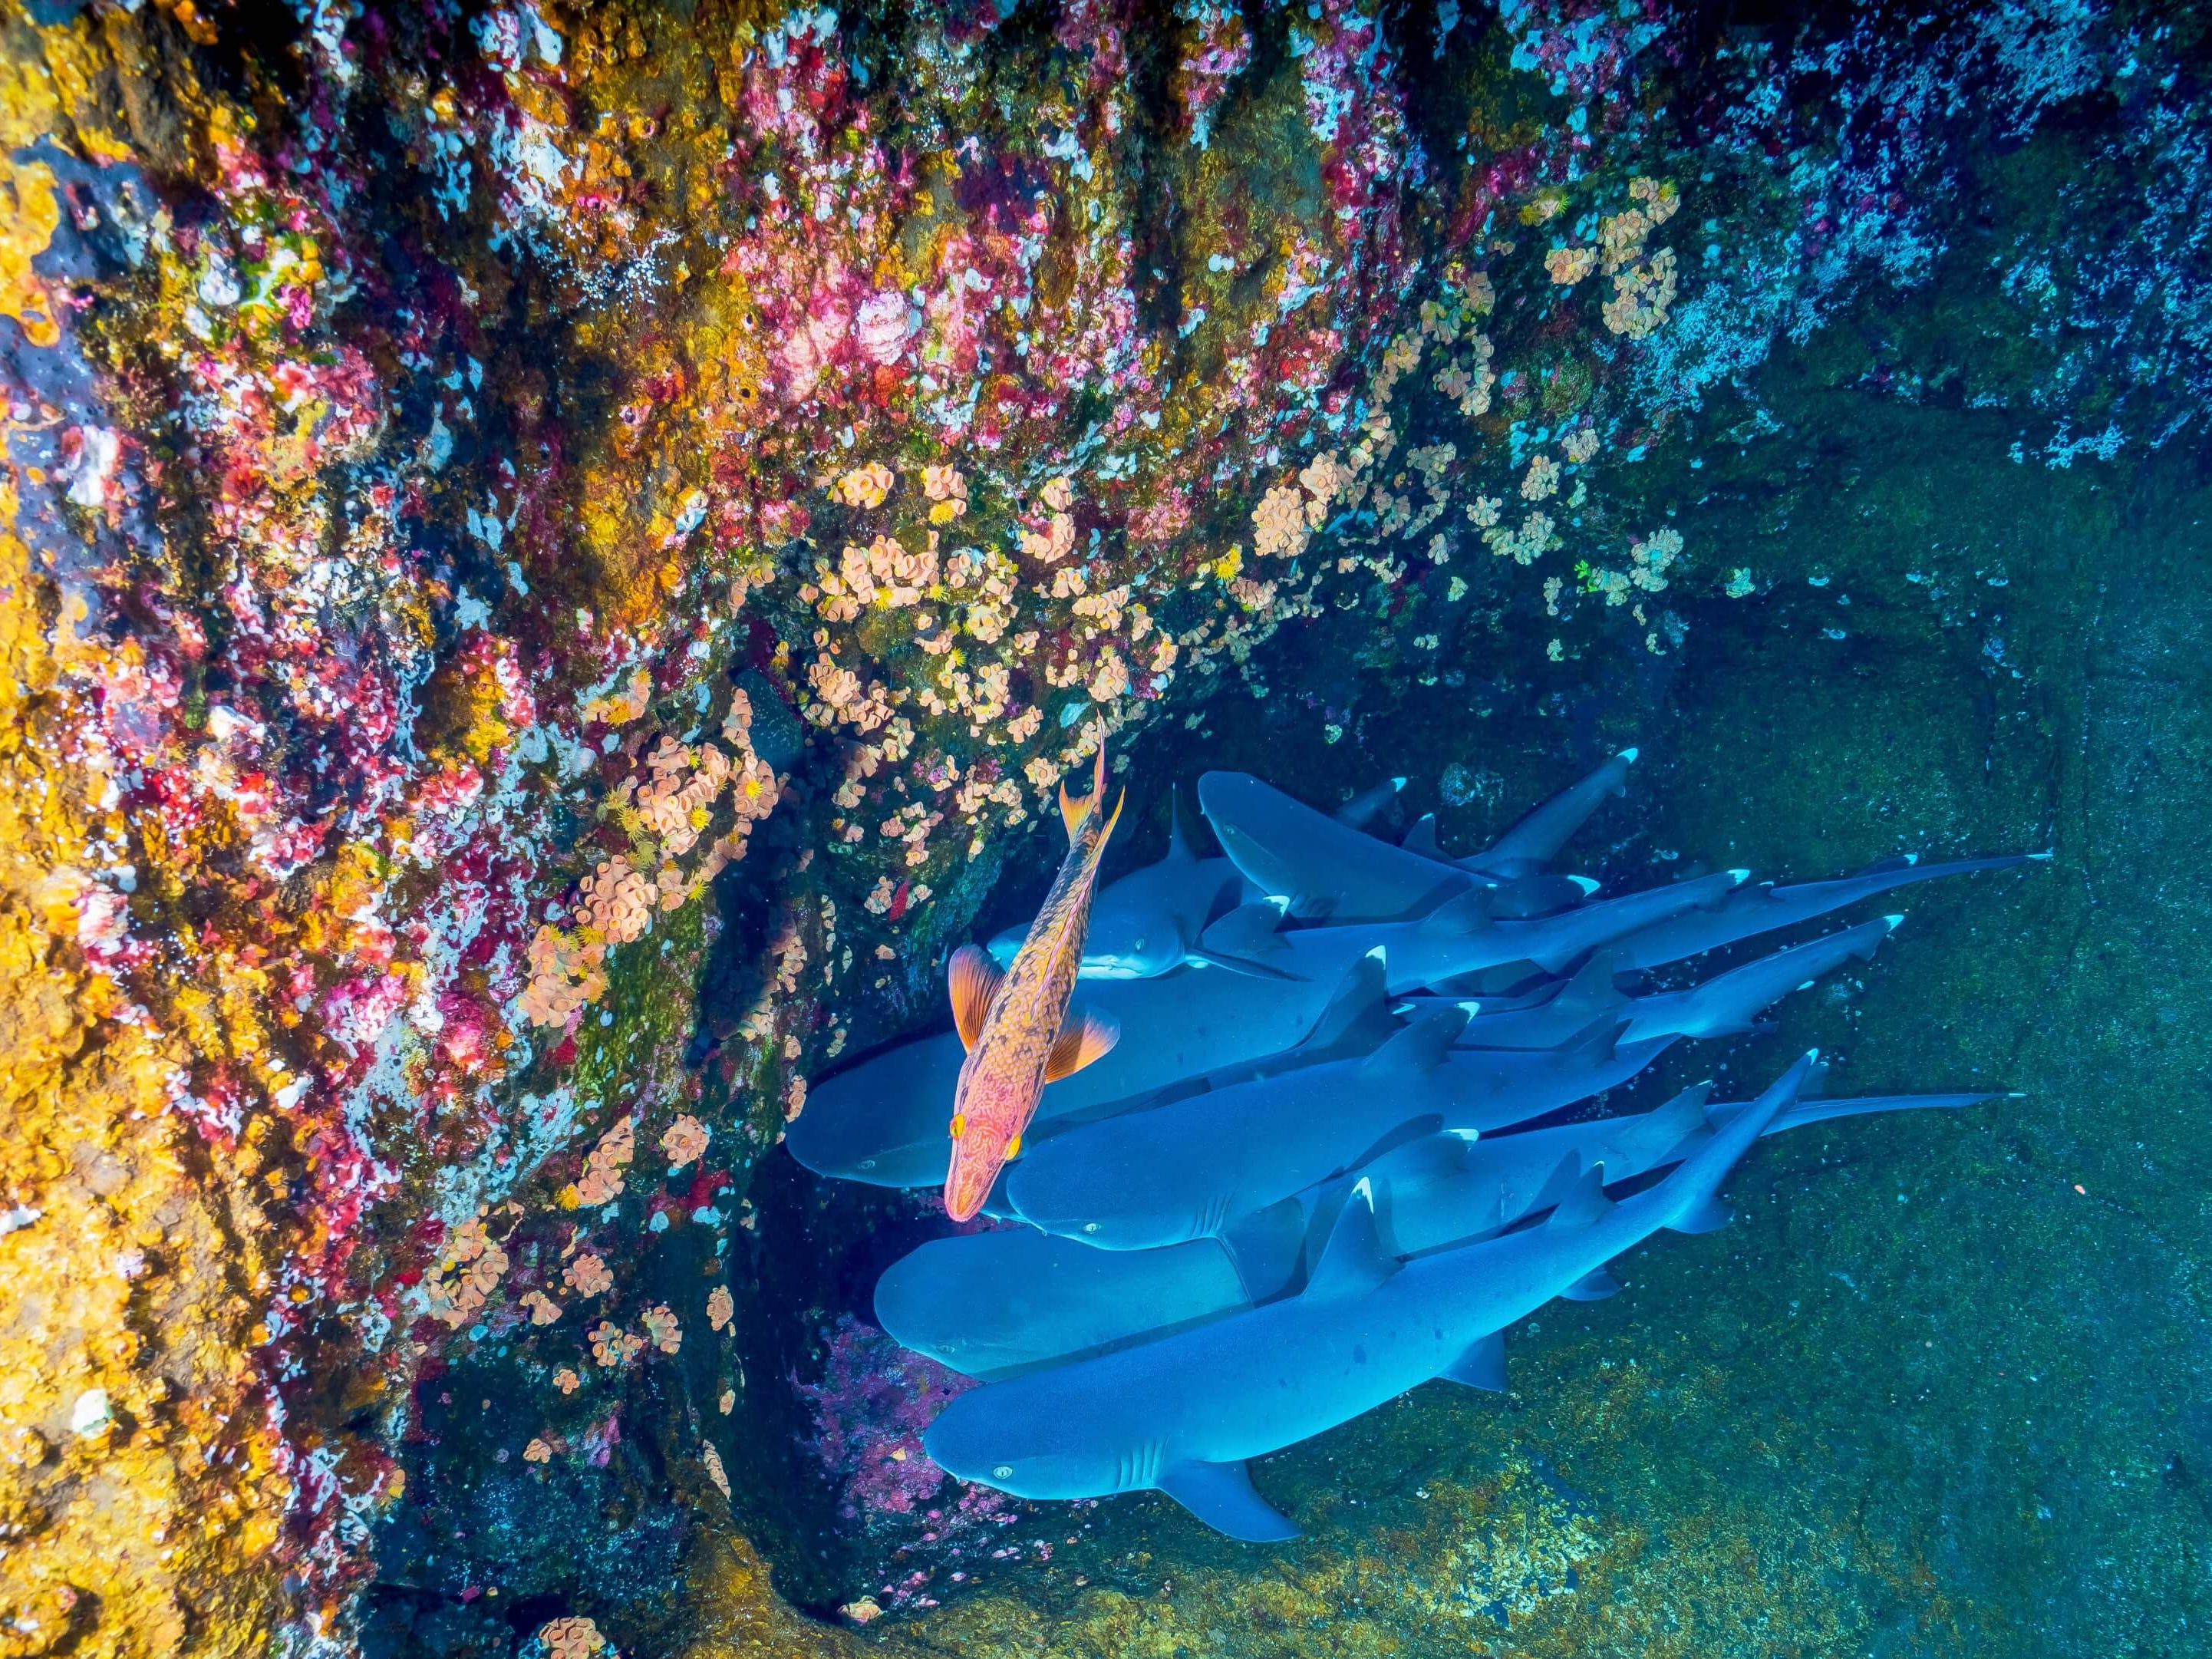 Montego Bay Marine Park in Jamaica is home to spectacular schools of colorful fish and coral.